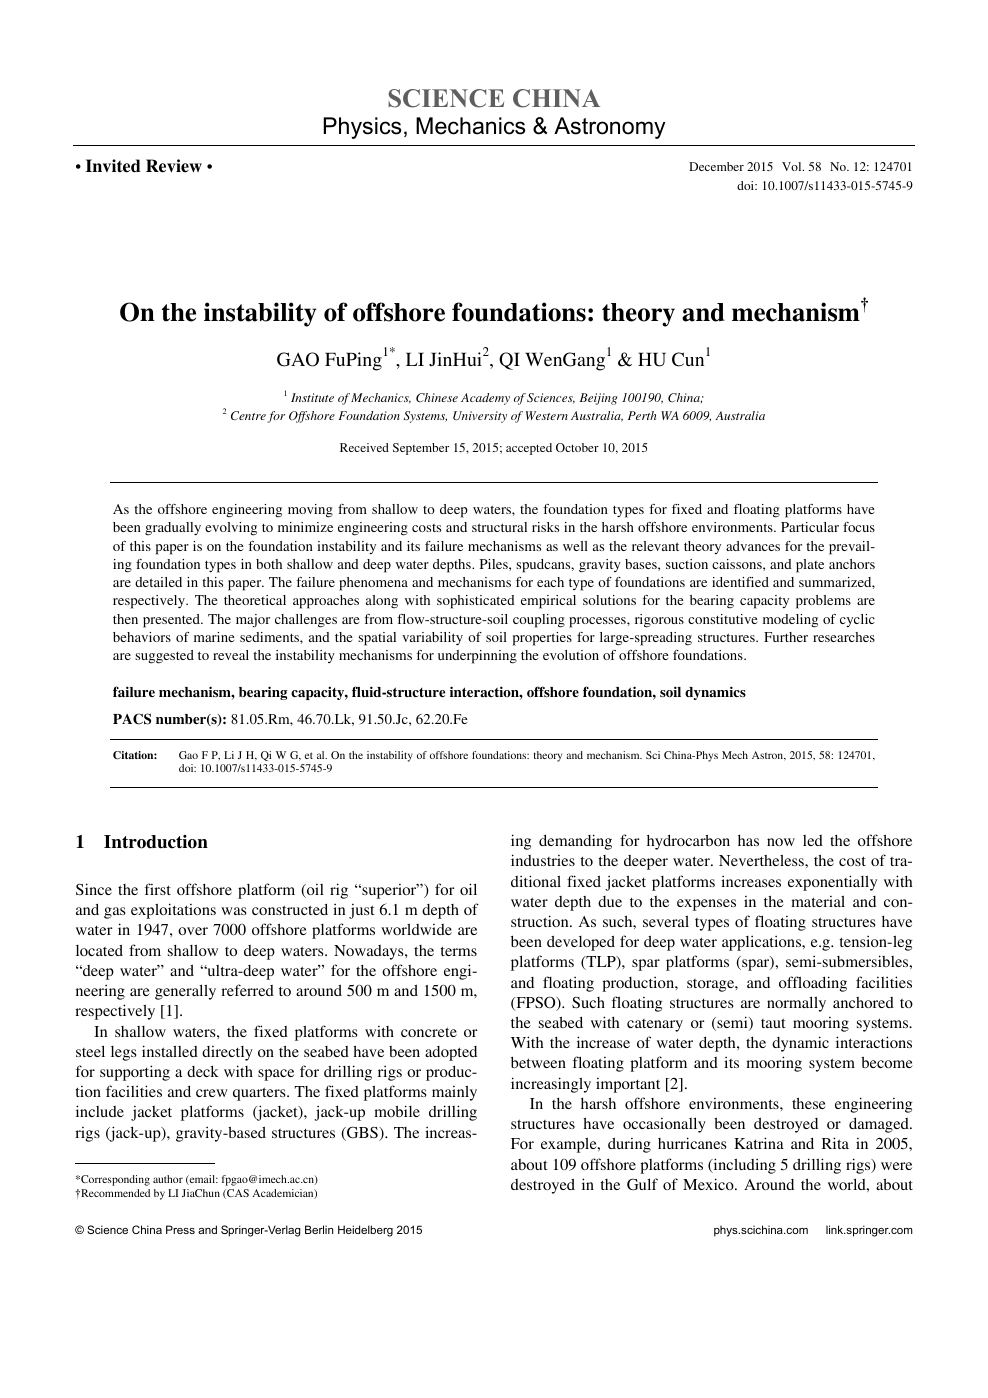 On the instability of offshore foundations: theory and